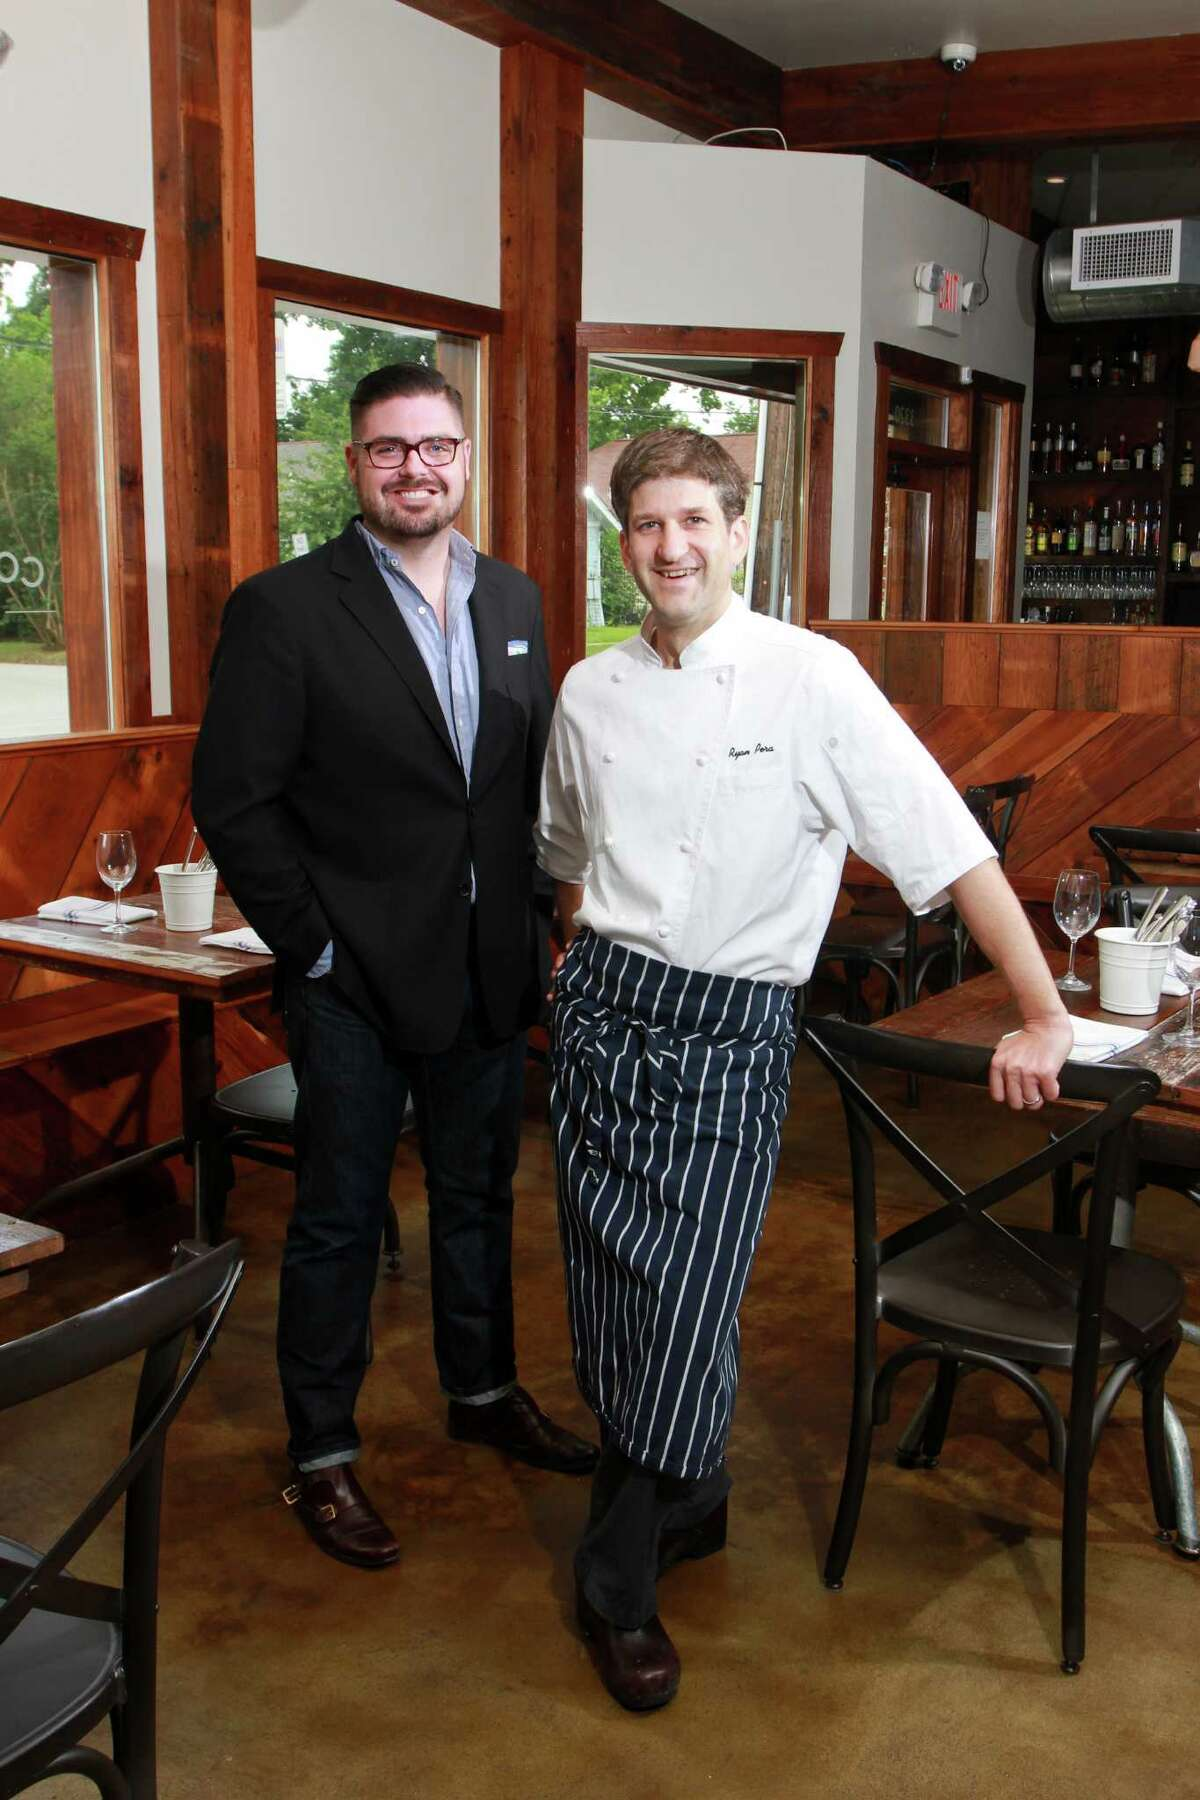 (For the Chronicle/Gary Fountain, May 9, 2014) Co-owners Morgan Weber, left, and Ryan Pera at Coltivare, 3320 White Oak in the Heights.